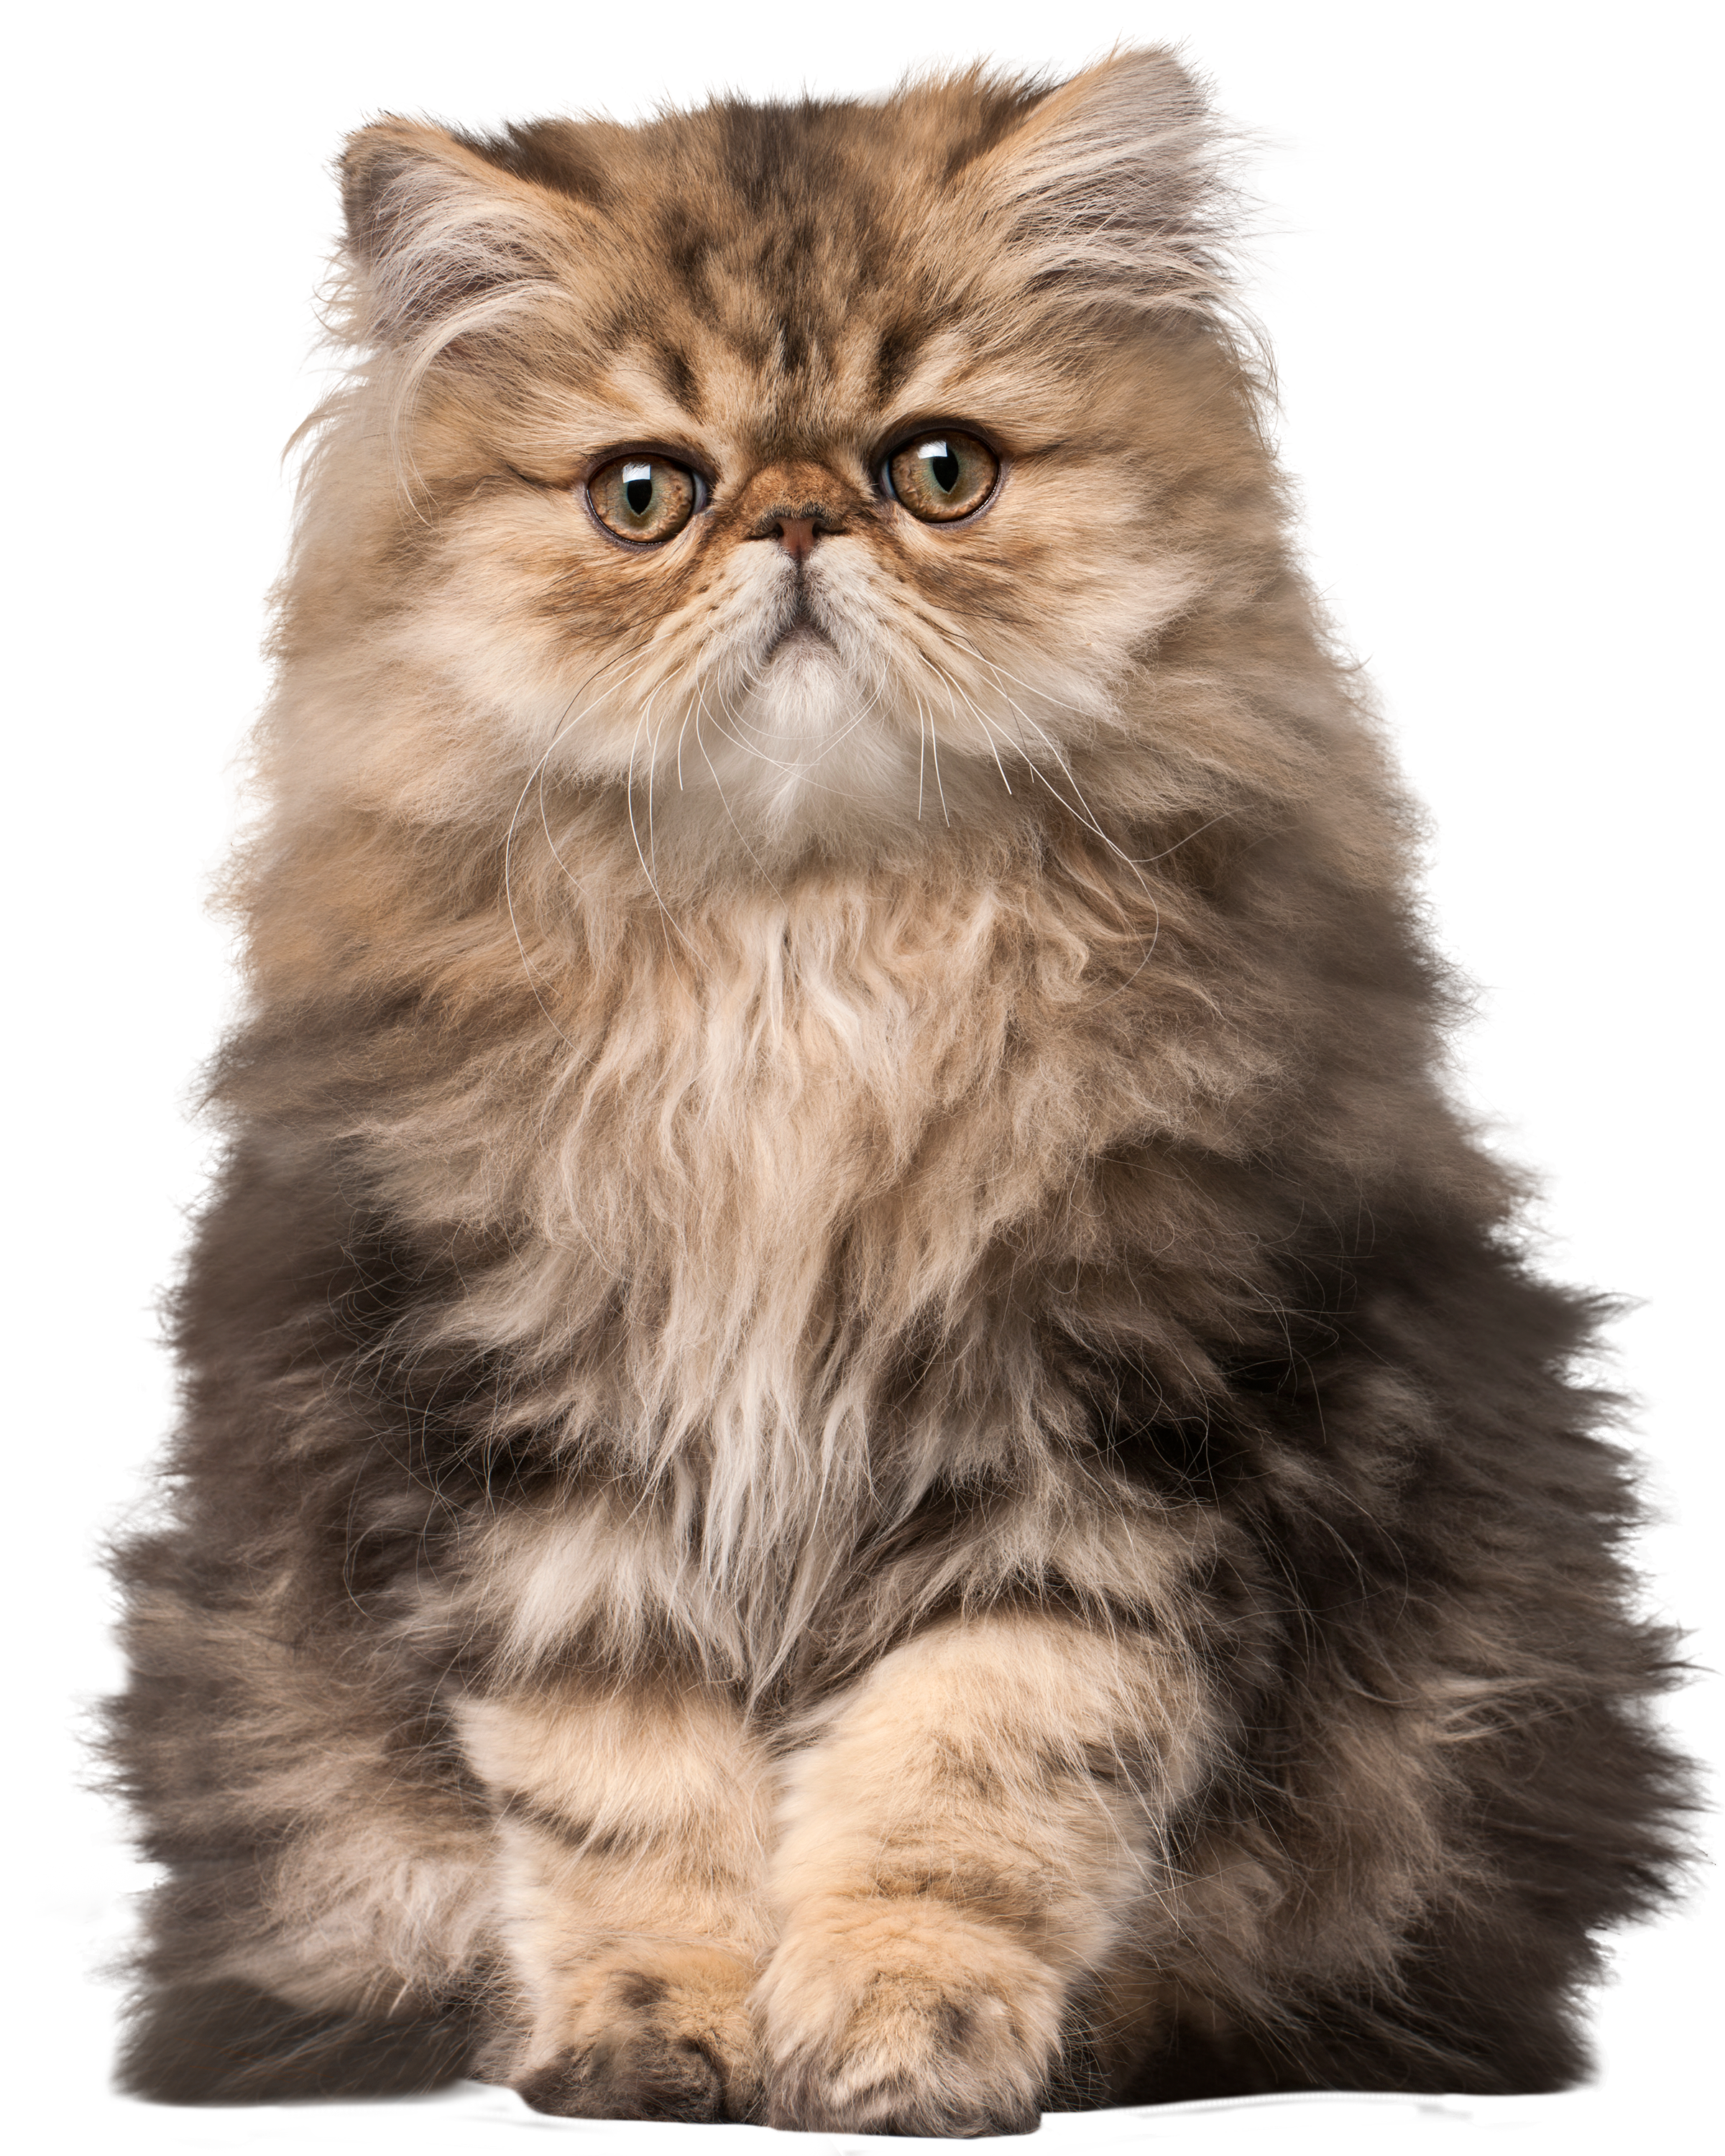 Png best web clipart. Cat clip art realistic image royalty free